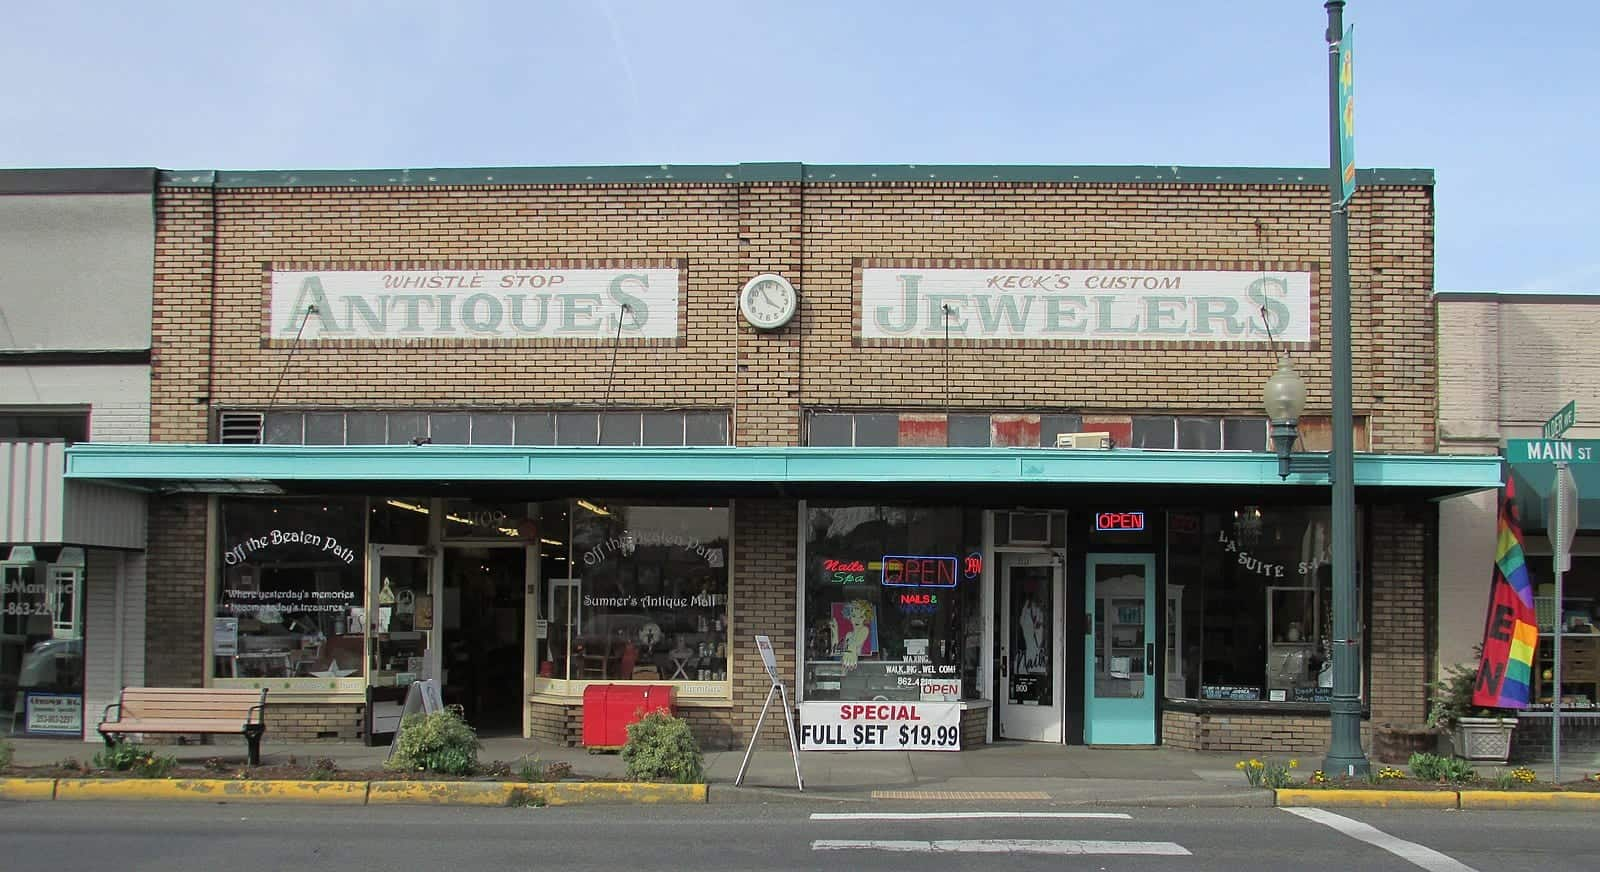 View from the street of a brick building in Sumner, WA containing two adjacent shops. One is an antique shop and a one is a jewelers shop.